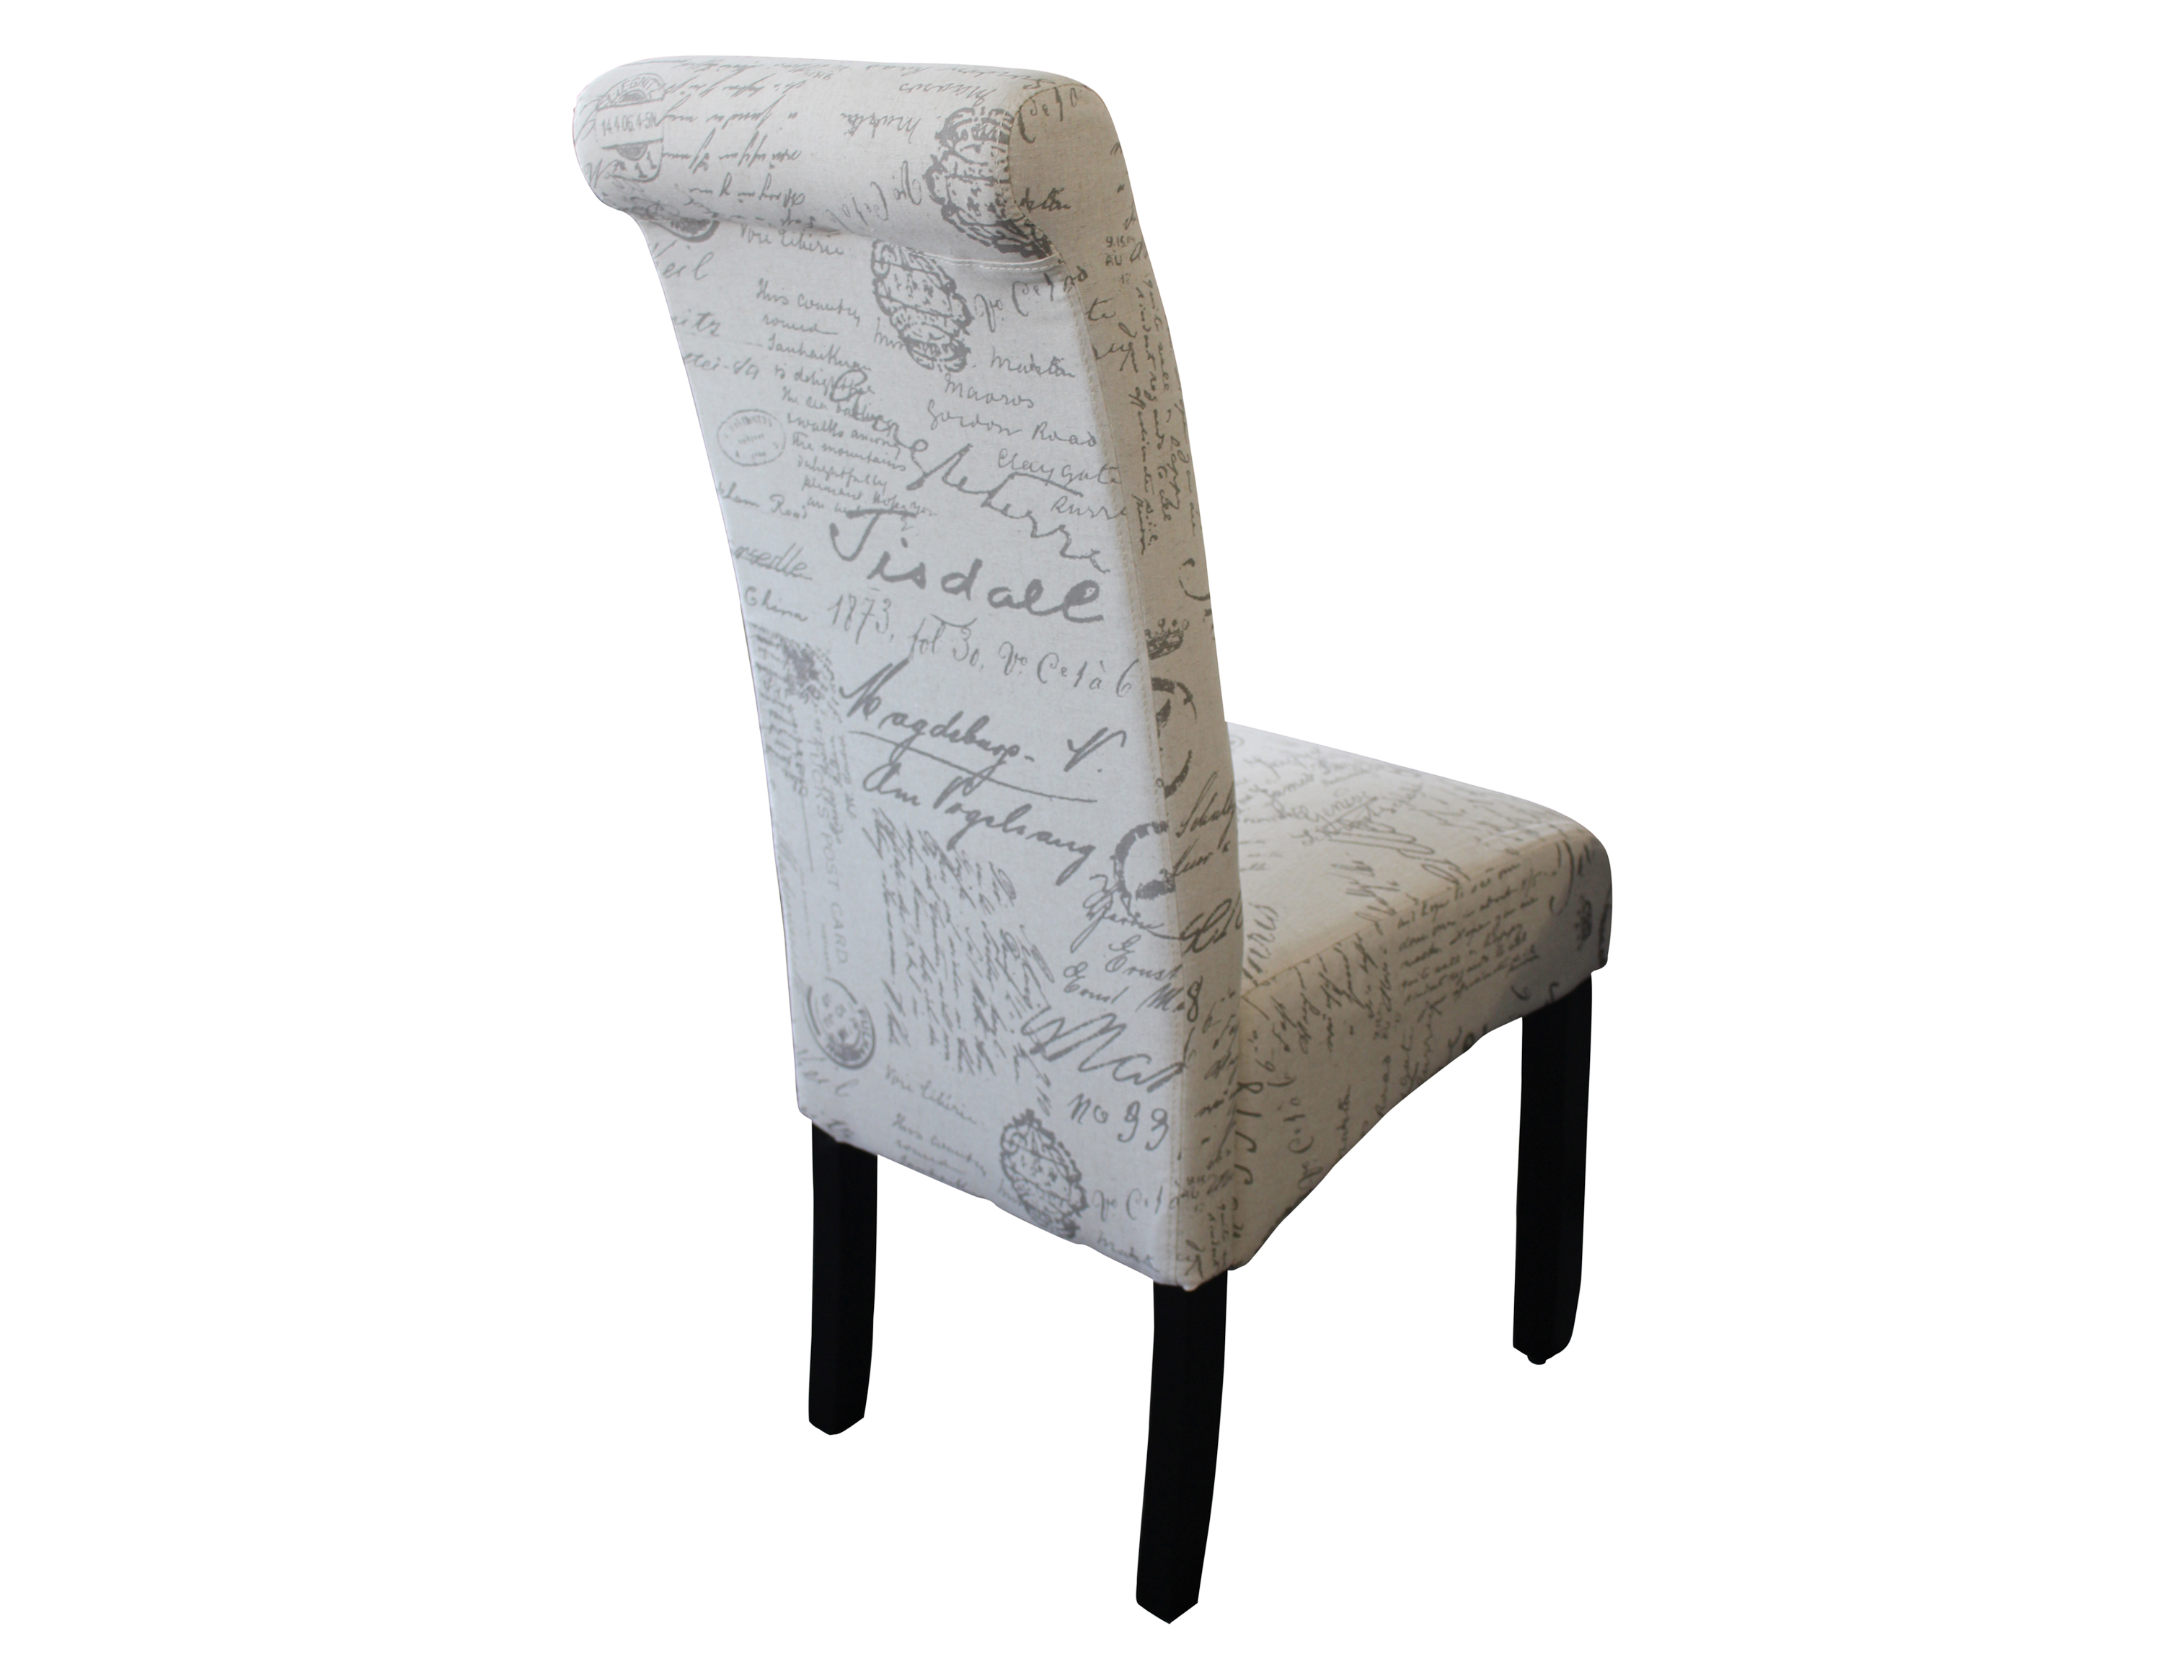 Avalon dining chair Blonde script fabric L0007 3 – Berton